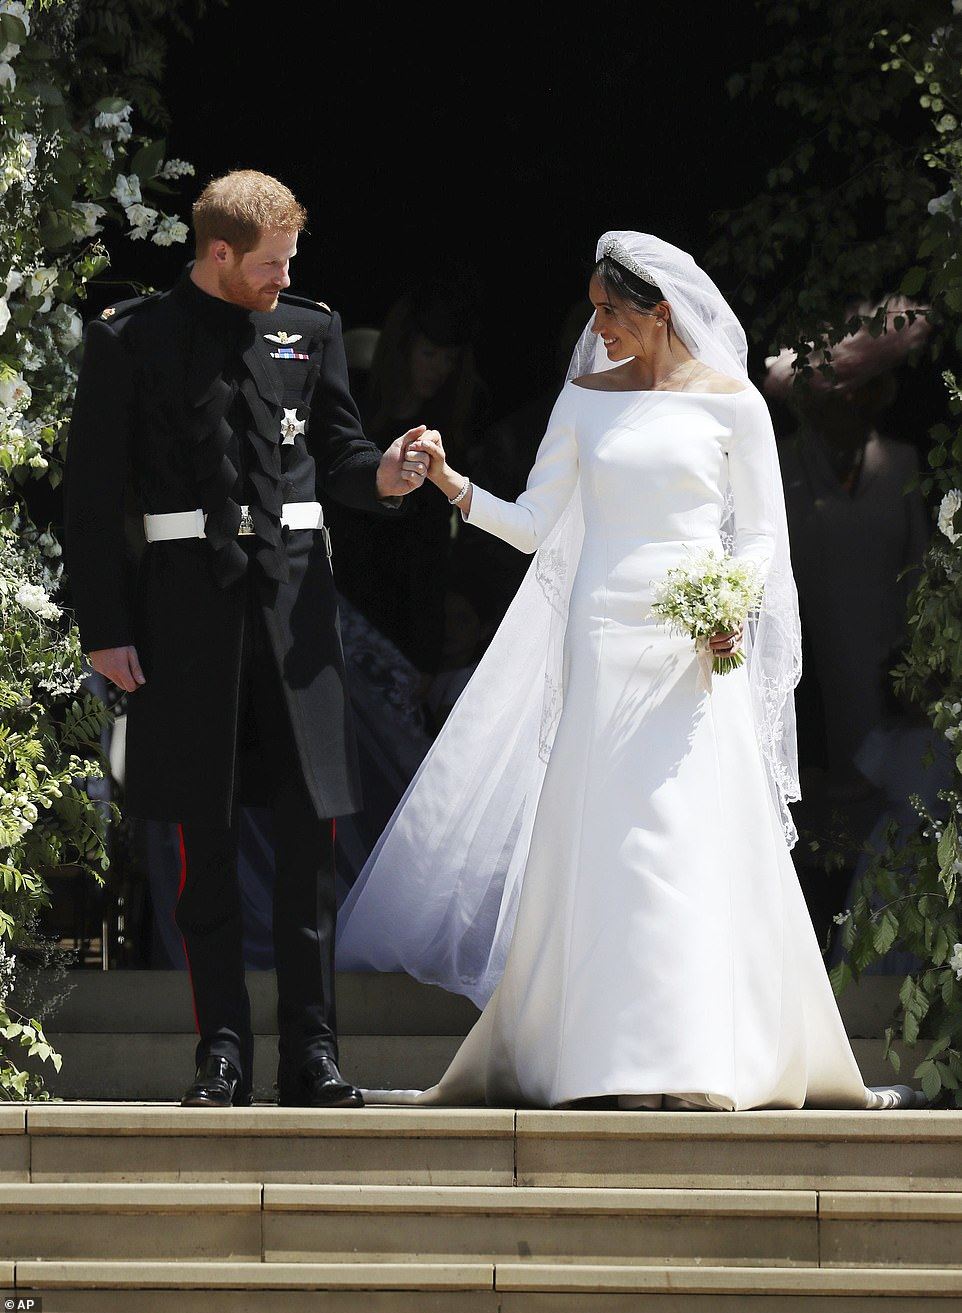 Meghan Markle and Prince Harry walked down the steps of St George's Chapel at Windsor Castle in Windsor, near London, following their wedding on May 19, 2018